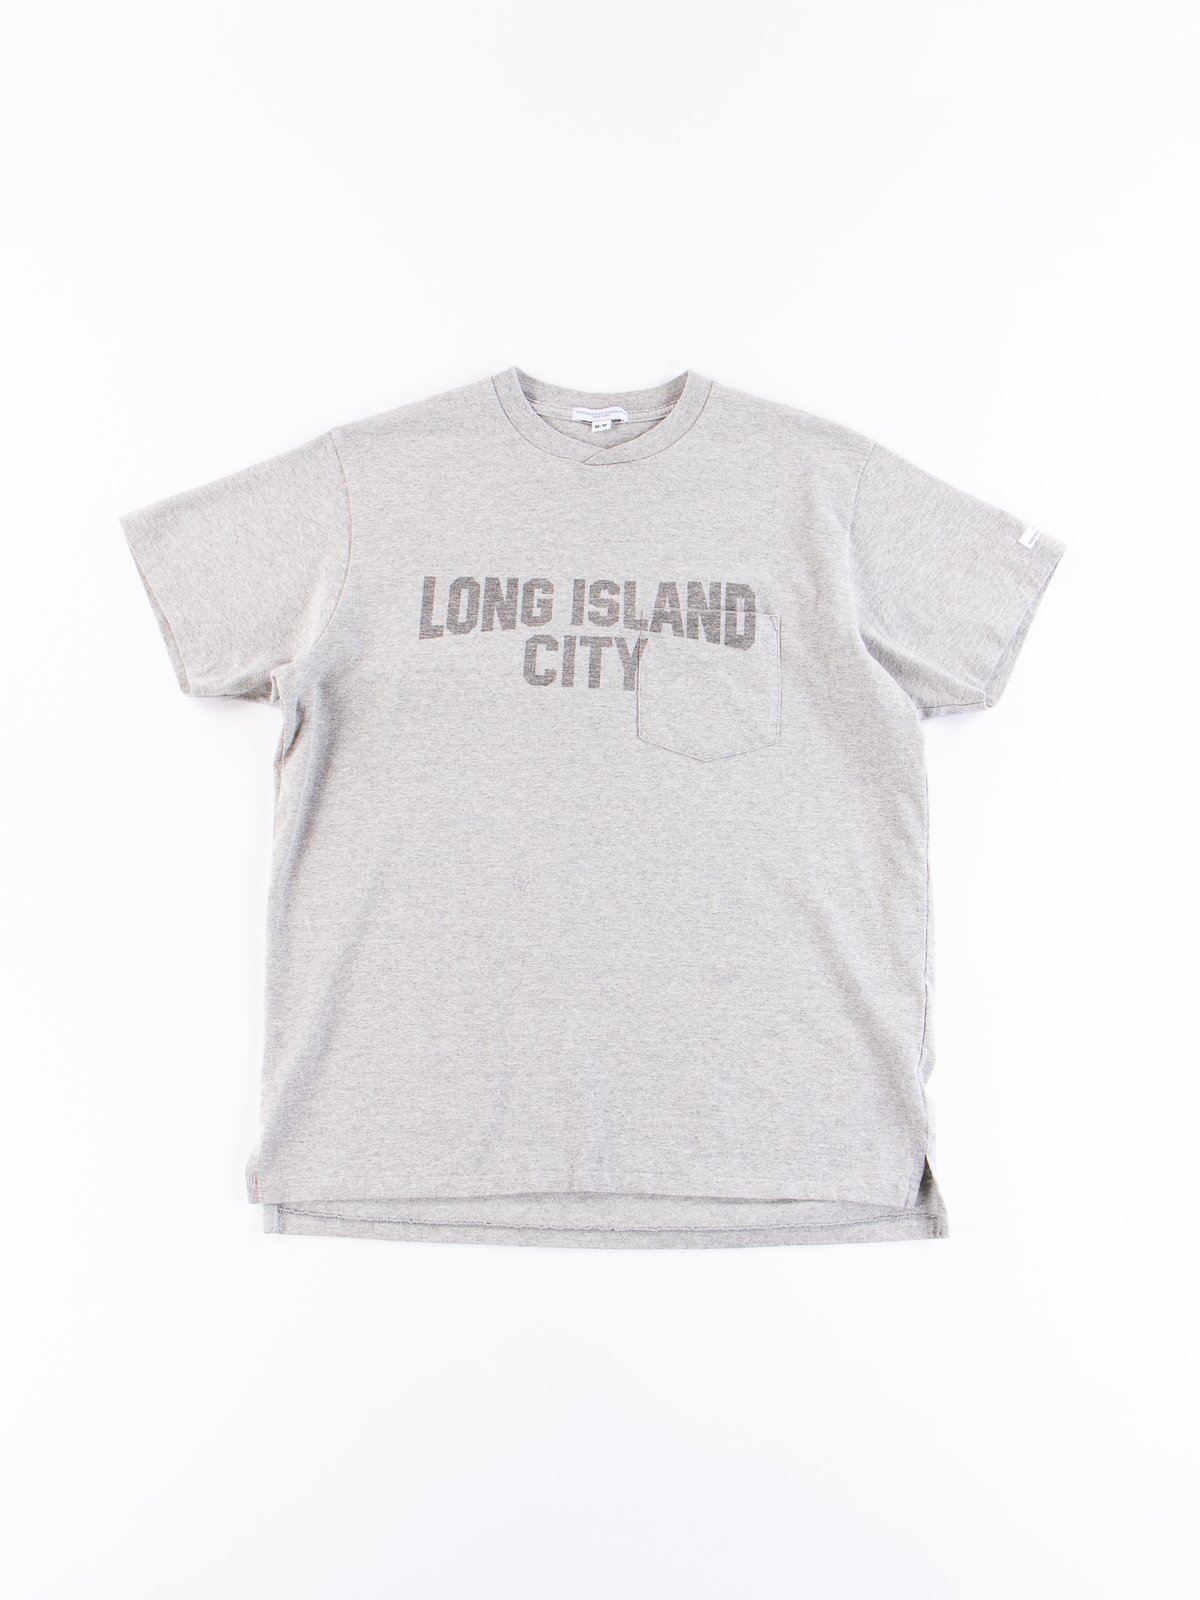 Grey Long Island City Printed T–Shirt - Image 1